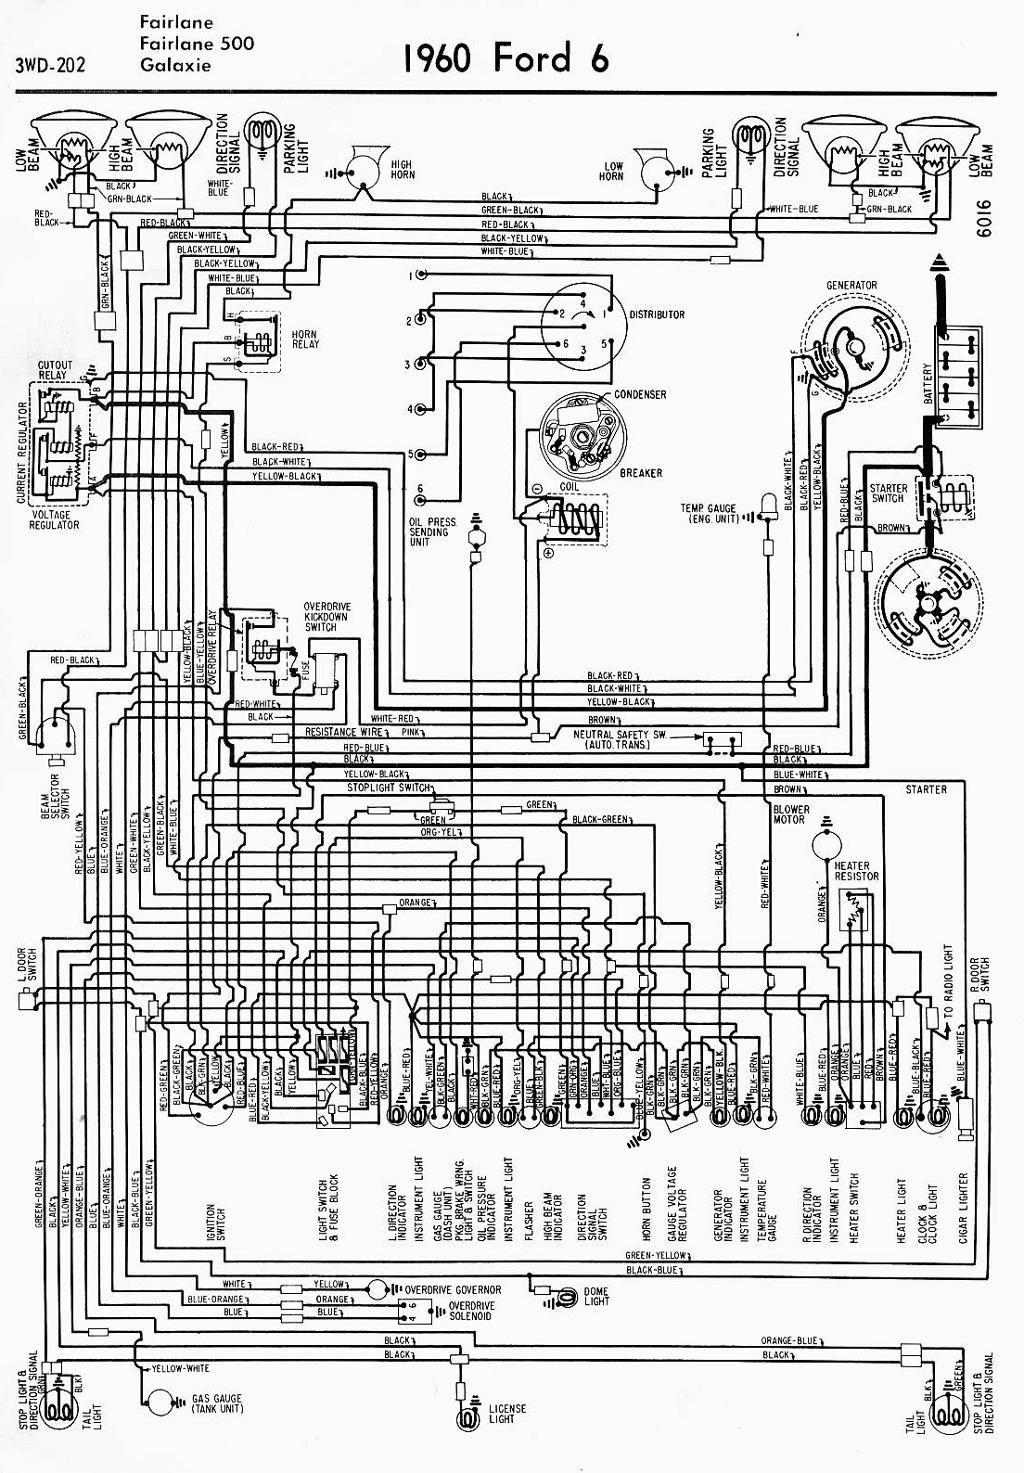 wiring diagram for 1960 ford 6 fairlane fairlane 500 and ...